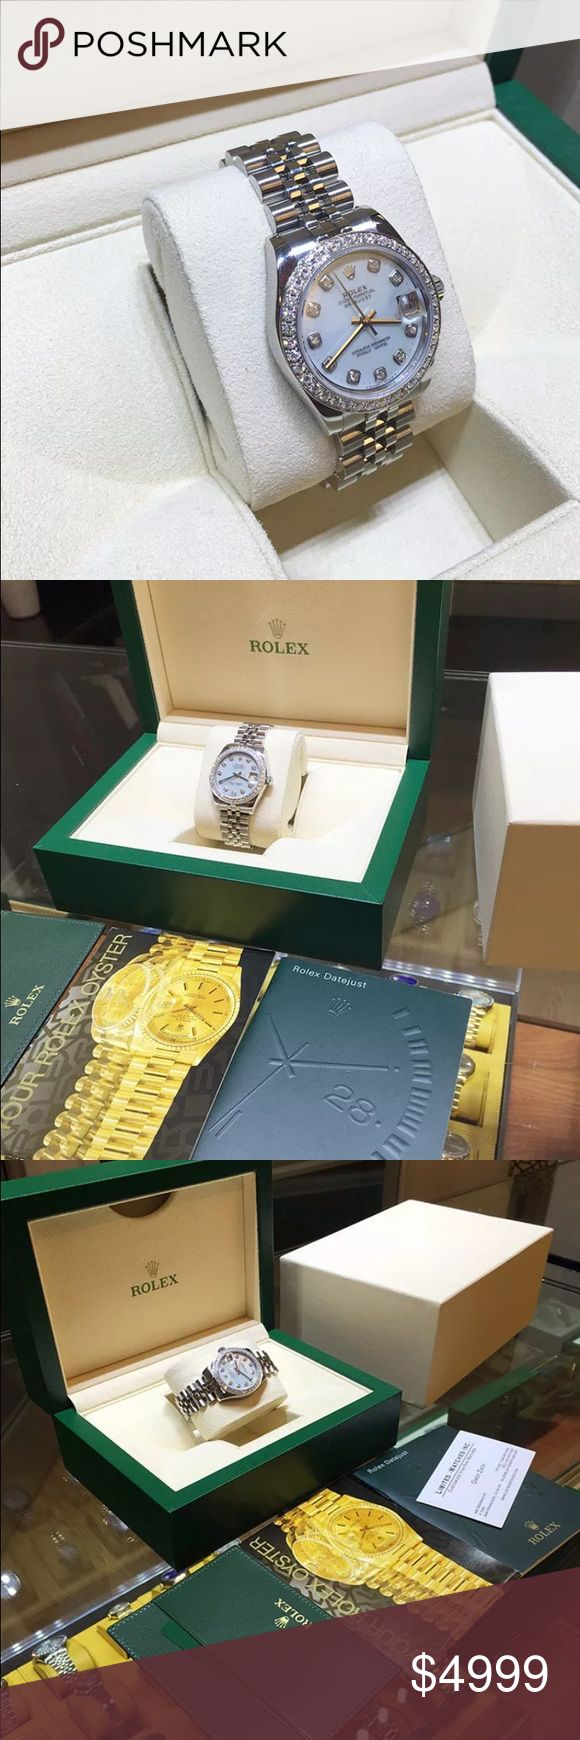 Ladies Rolex Midsize Watch 178240 STAINLESS STEEL Rolex Datejust 178240 Ladies 31mm Midsize Diamond Dial & Bezel Silver Stainless Steel Jubilee BOX/PAPERS BRAND NEW 2015     TEXT ME AT 678-362-5187 FOR CHEAPER PRICE! Rolex Accessories Watches